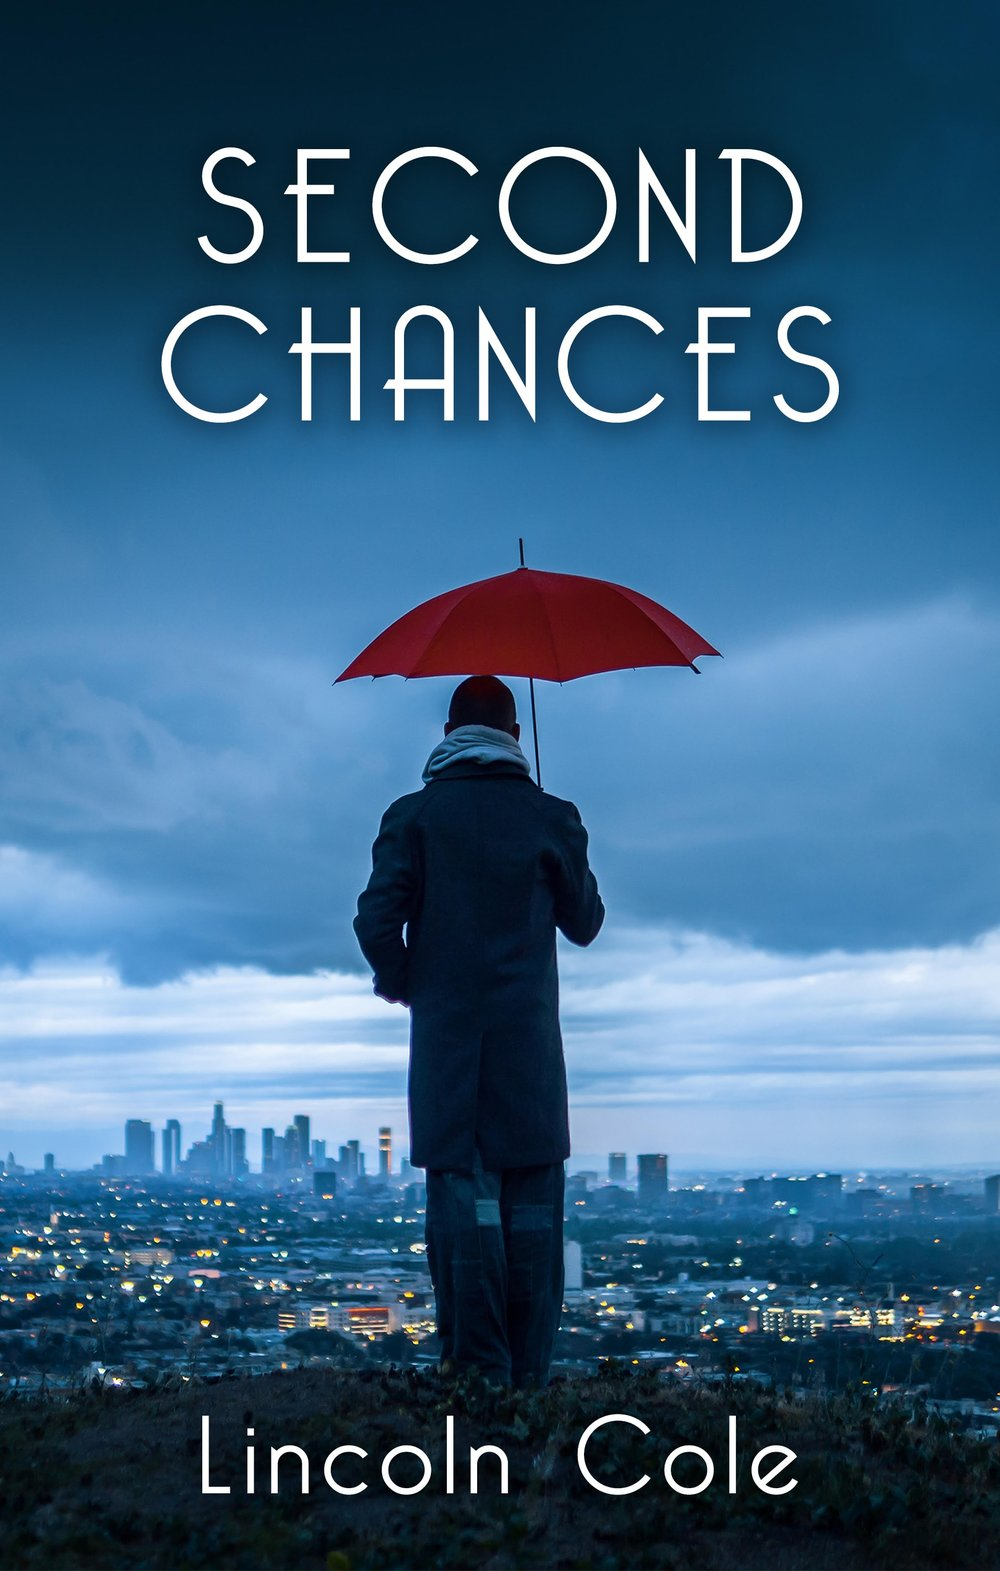 Second Chances - Nichole is caught in a tough position, juggling too many responsibilities as her world falls apart around her. When her mother turns up missing while performing an errand, Nichole is left picking up the pieces of her shattered life and taking care of her younger siblings. She isn't sure where she can turn to for help and she is facing a lot of harsh realities about how life works.Richard wants to help Nichole through this heartbreaking situation, but he discovers that he's been doing the right things for the wrong reasons for a long time. Everything begins to fall apart as he realizes he's swept problems under the rug for so long he might no longer be able to fix them.Can they overcome their own prejudices and get a Second Chance?